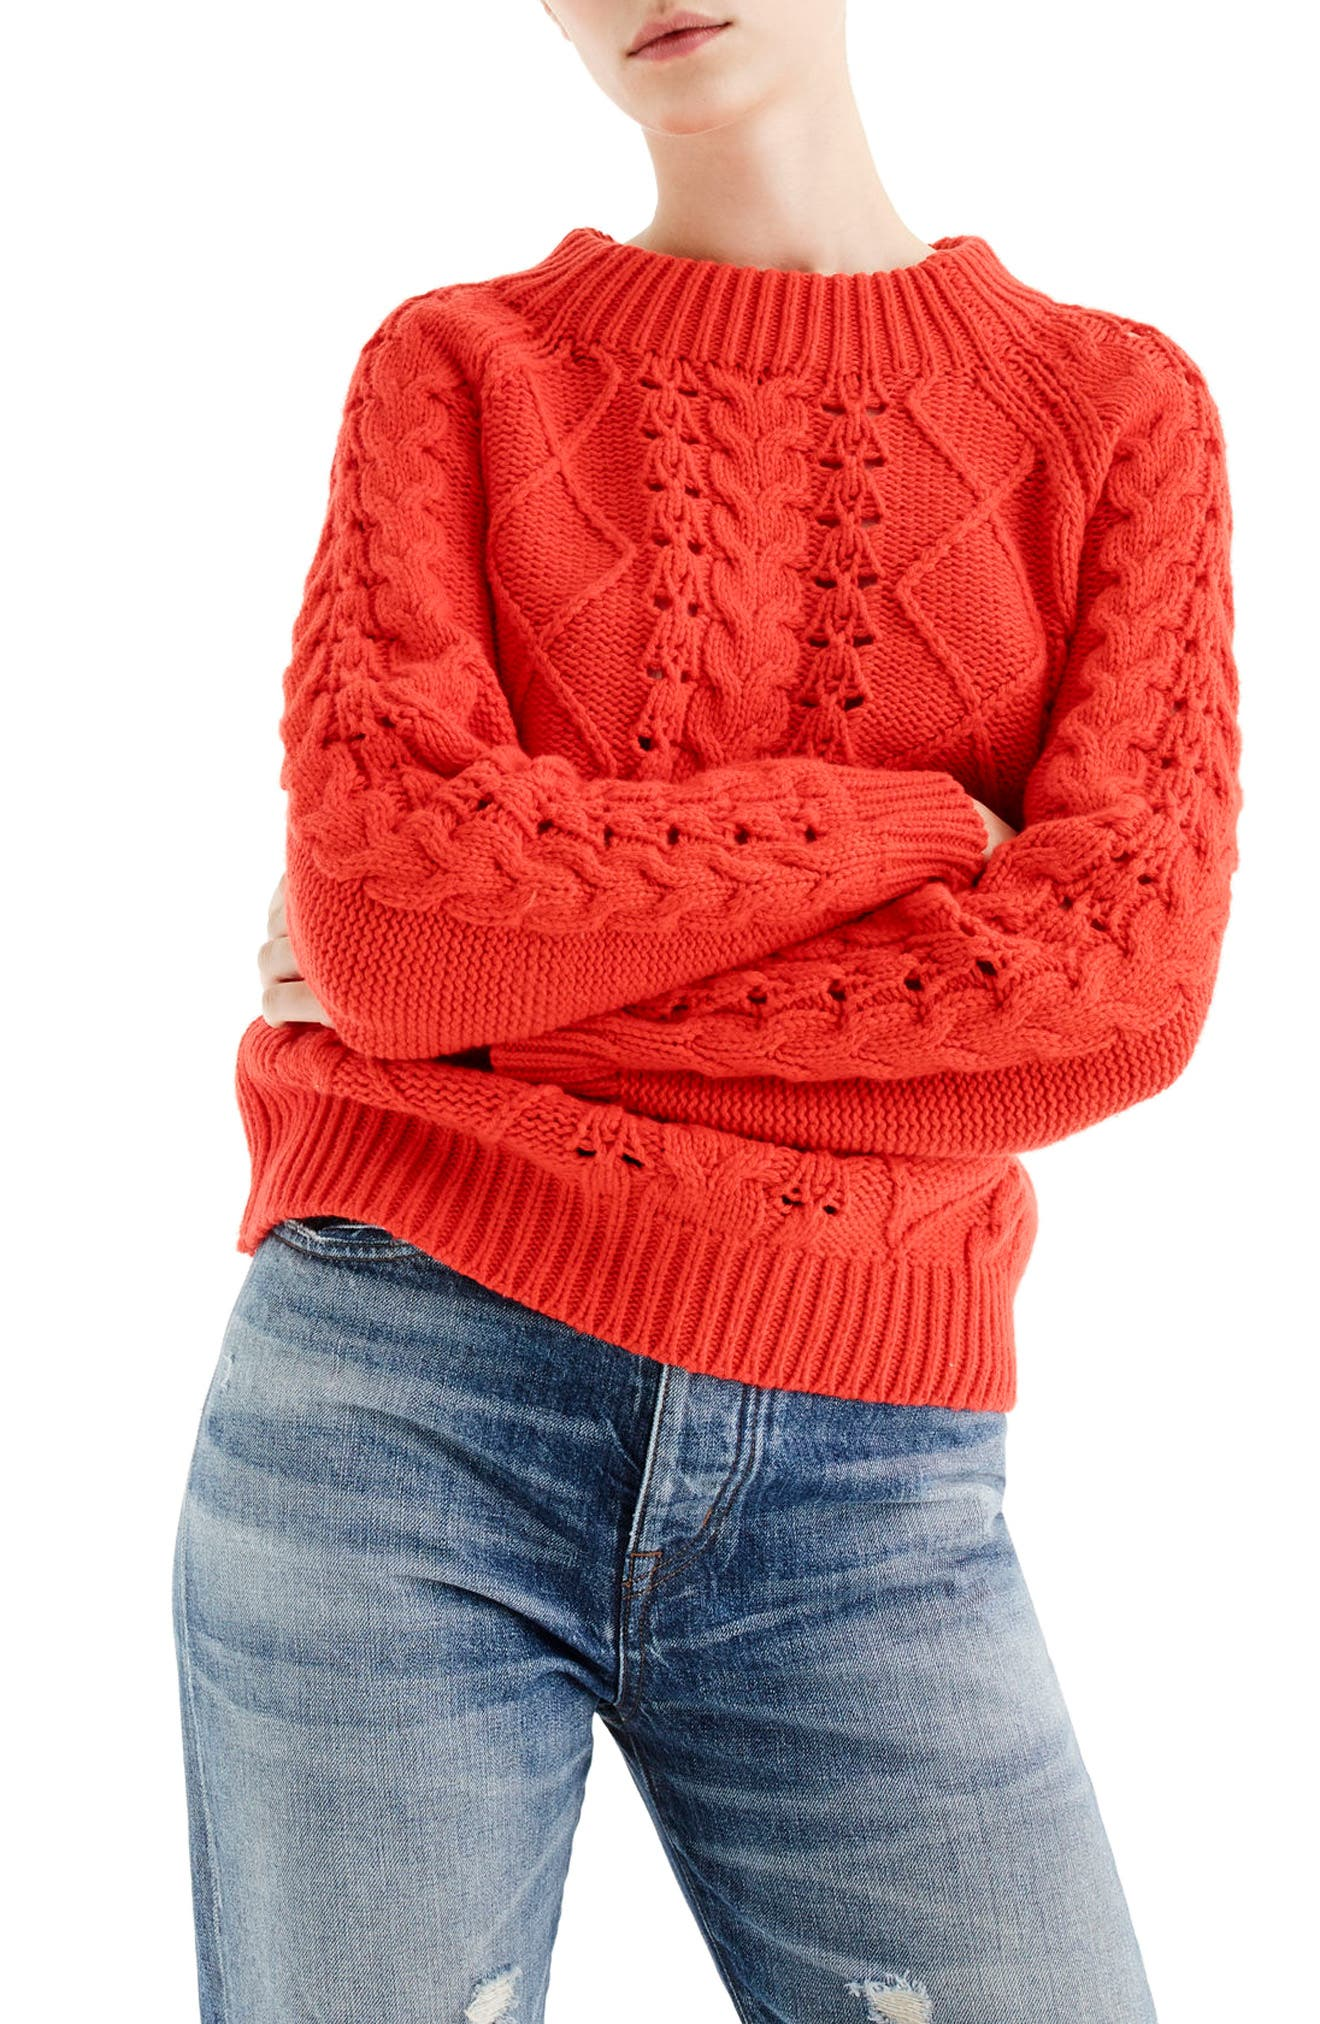 Alternate Image 1 Selected - J.Crew Cable Knit Mock Neck Sweater